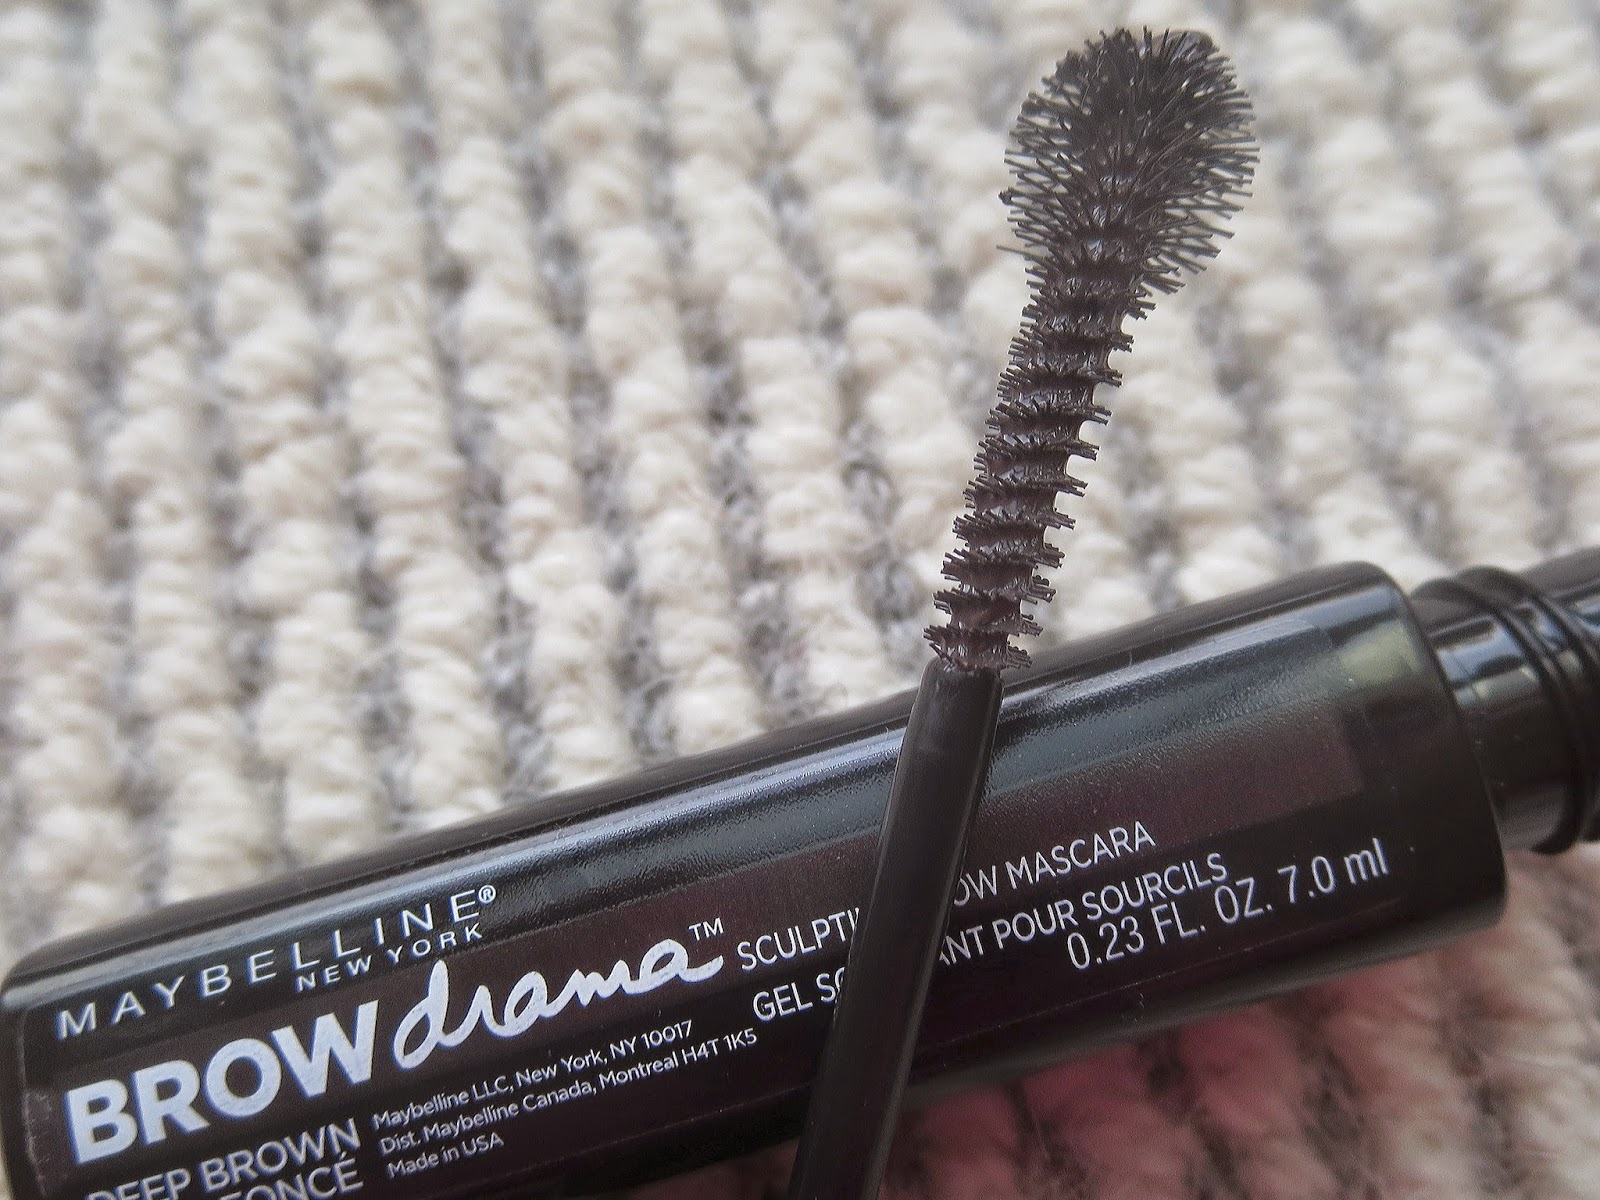 a picture of Maybelline Brow Drama applicator/brush